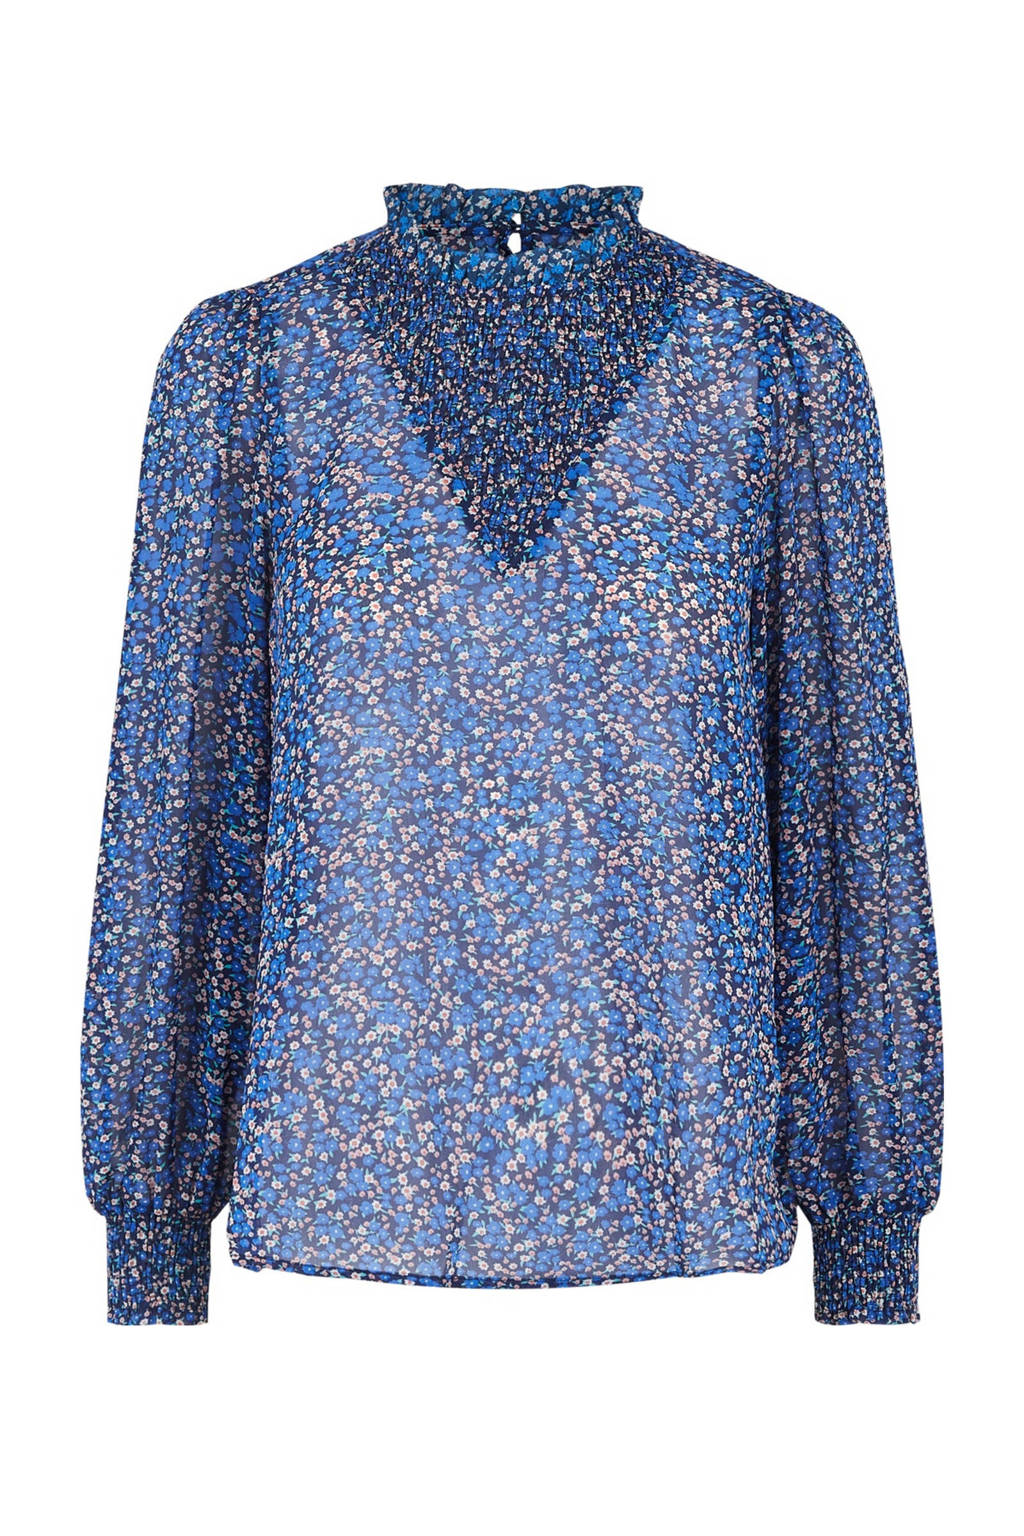 PIECES blouse PCTILLE met all over print blauw, Blauw